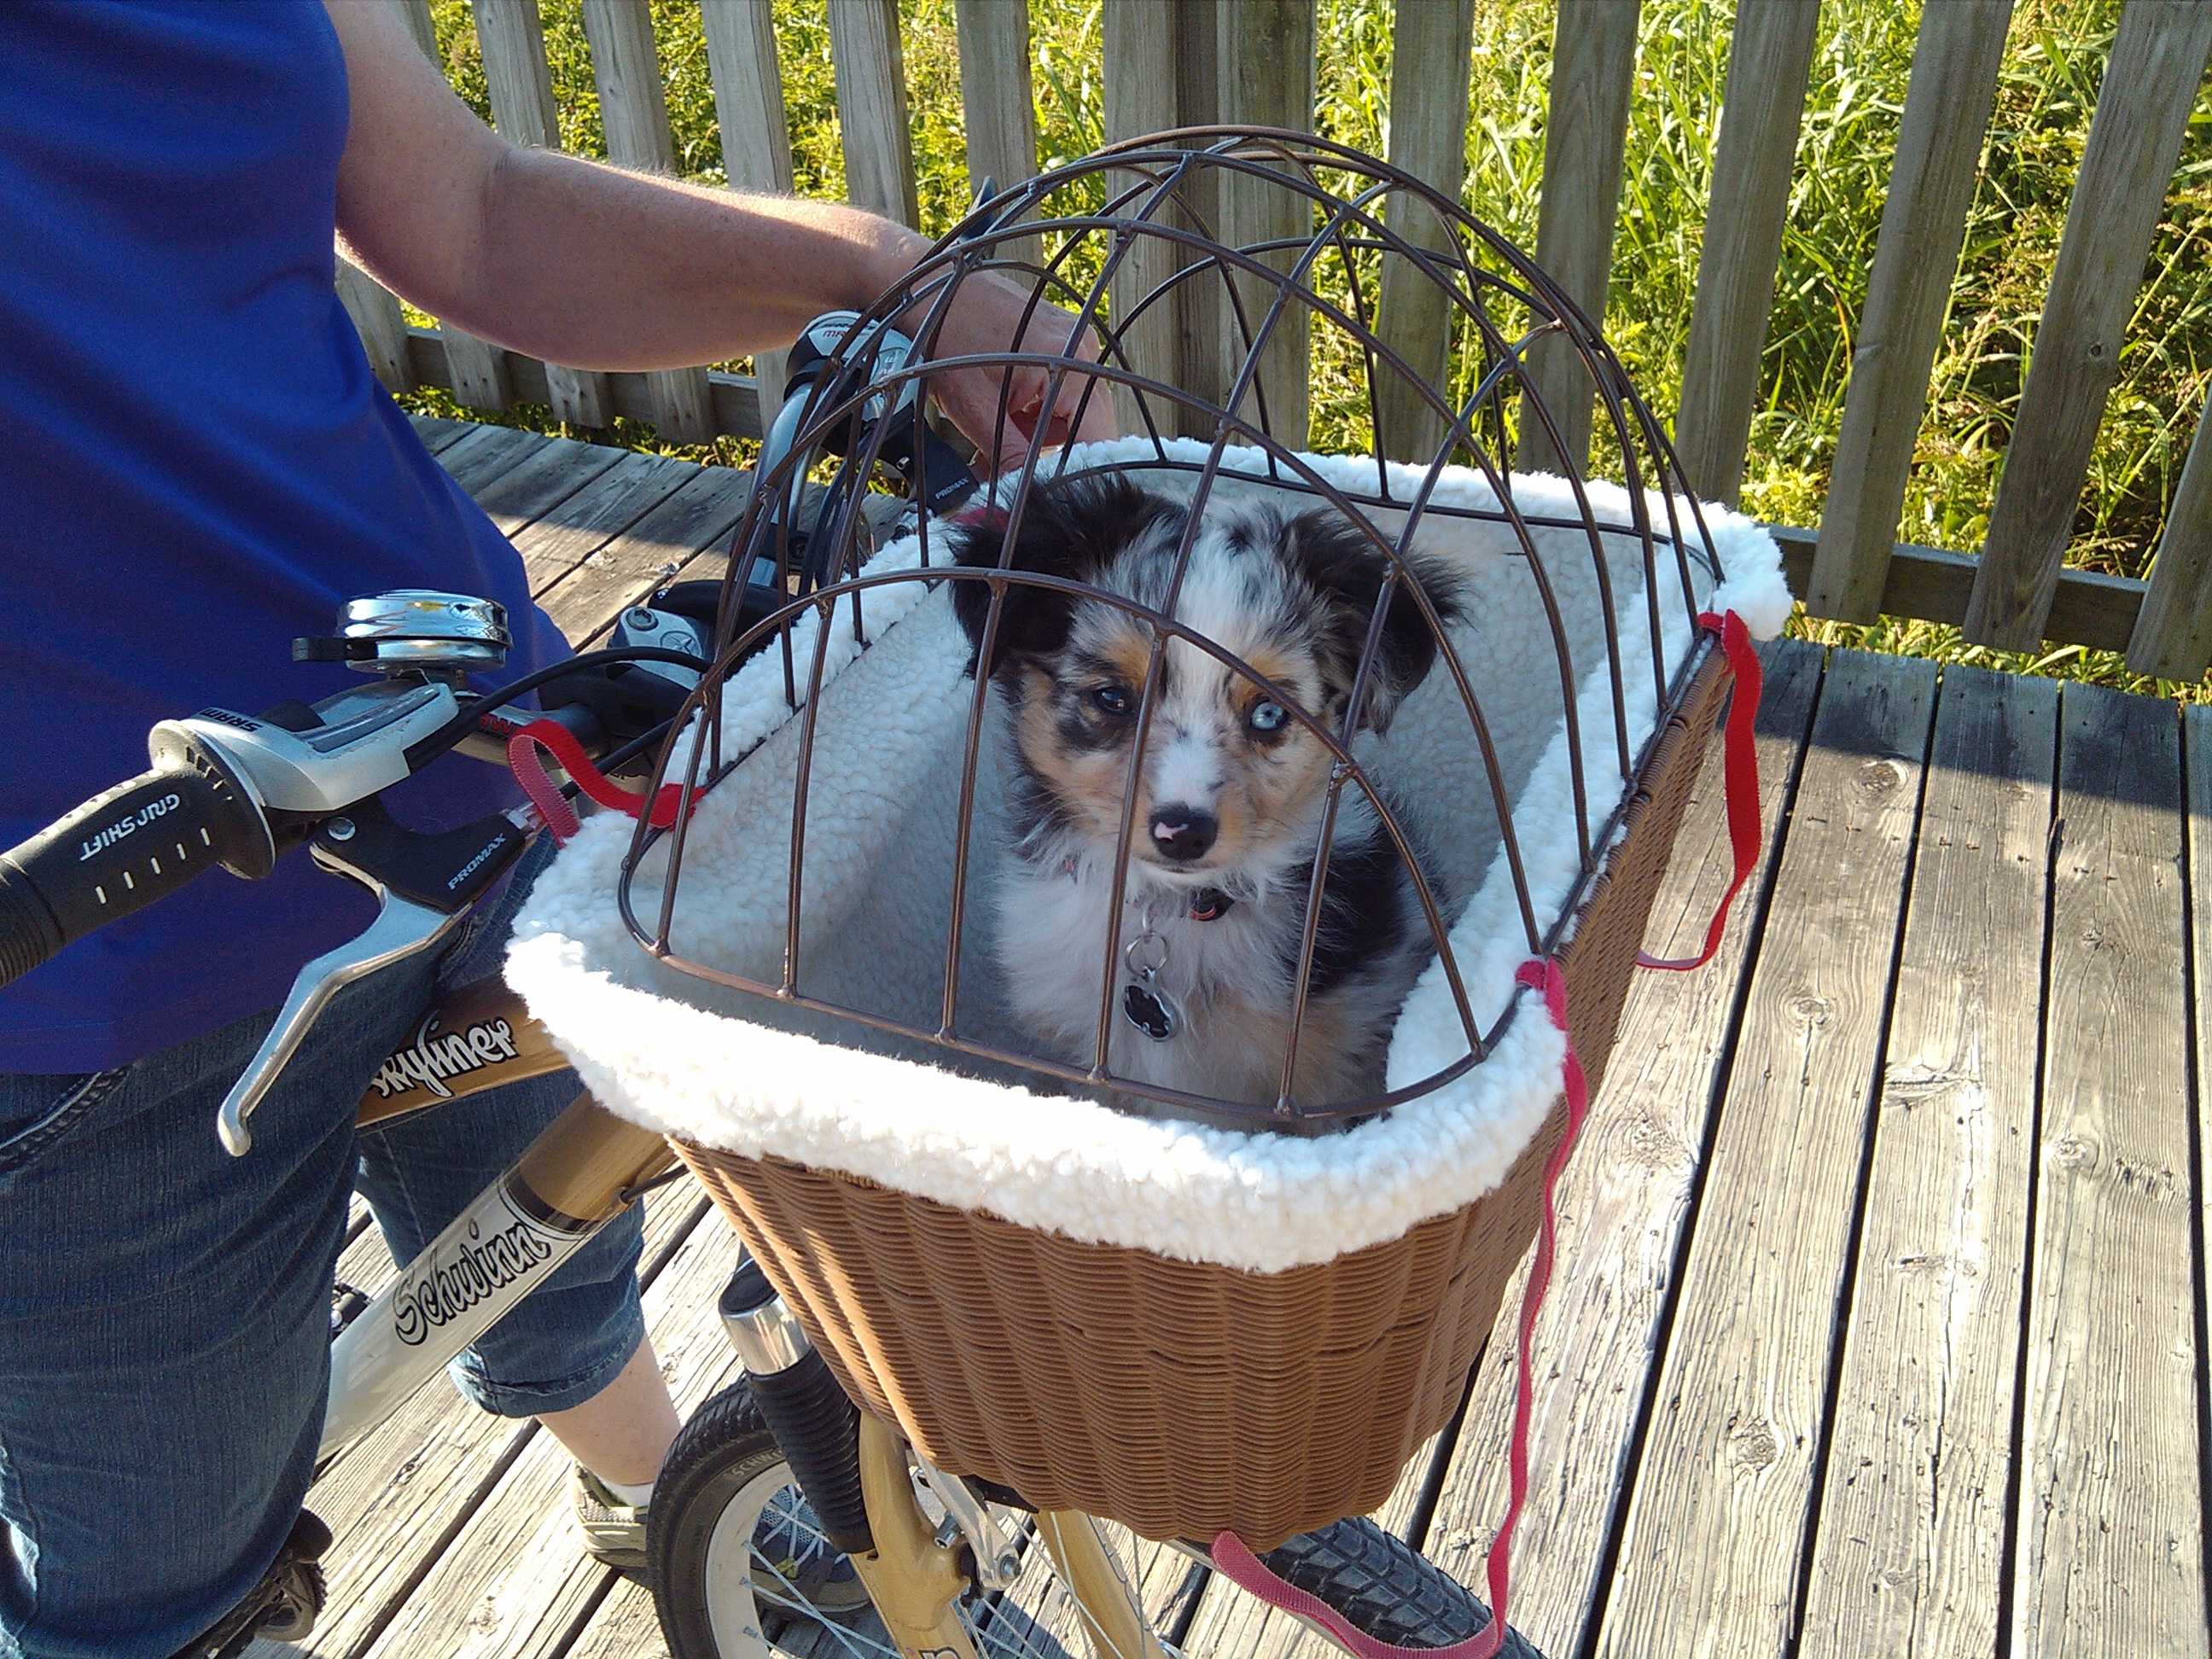 Puppy in Bicycle Basket